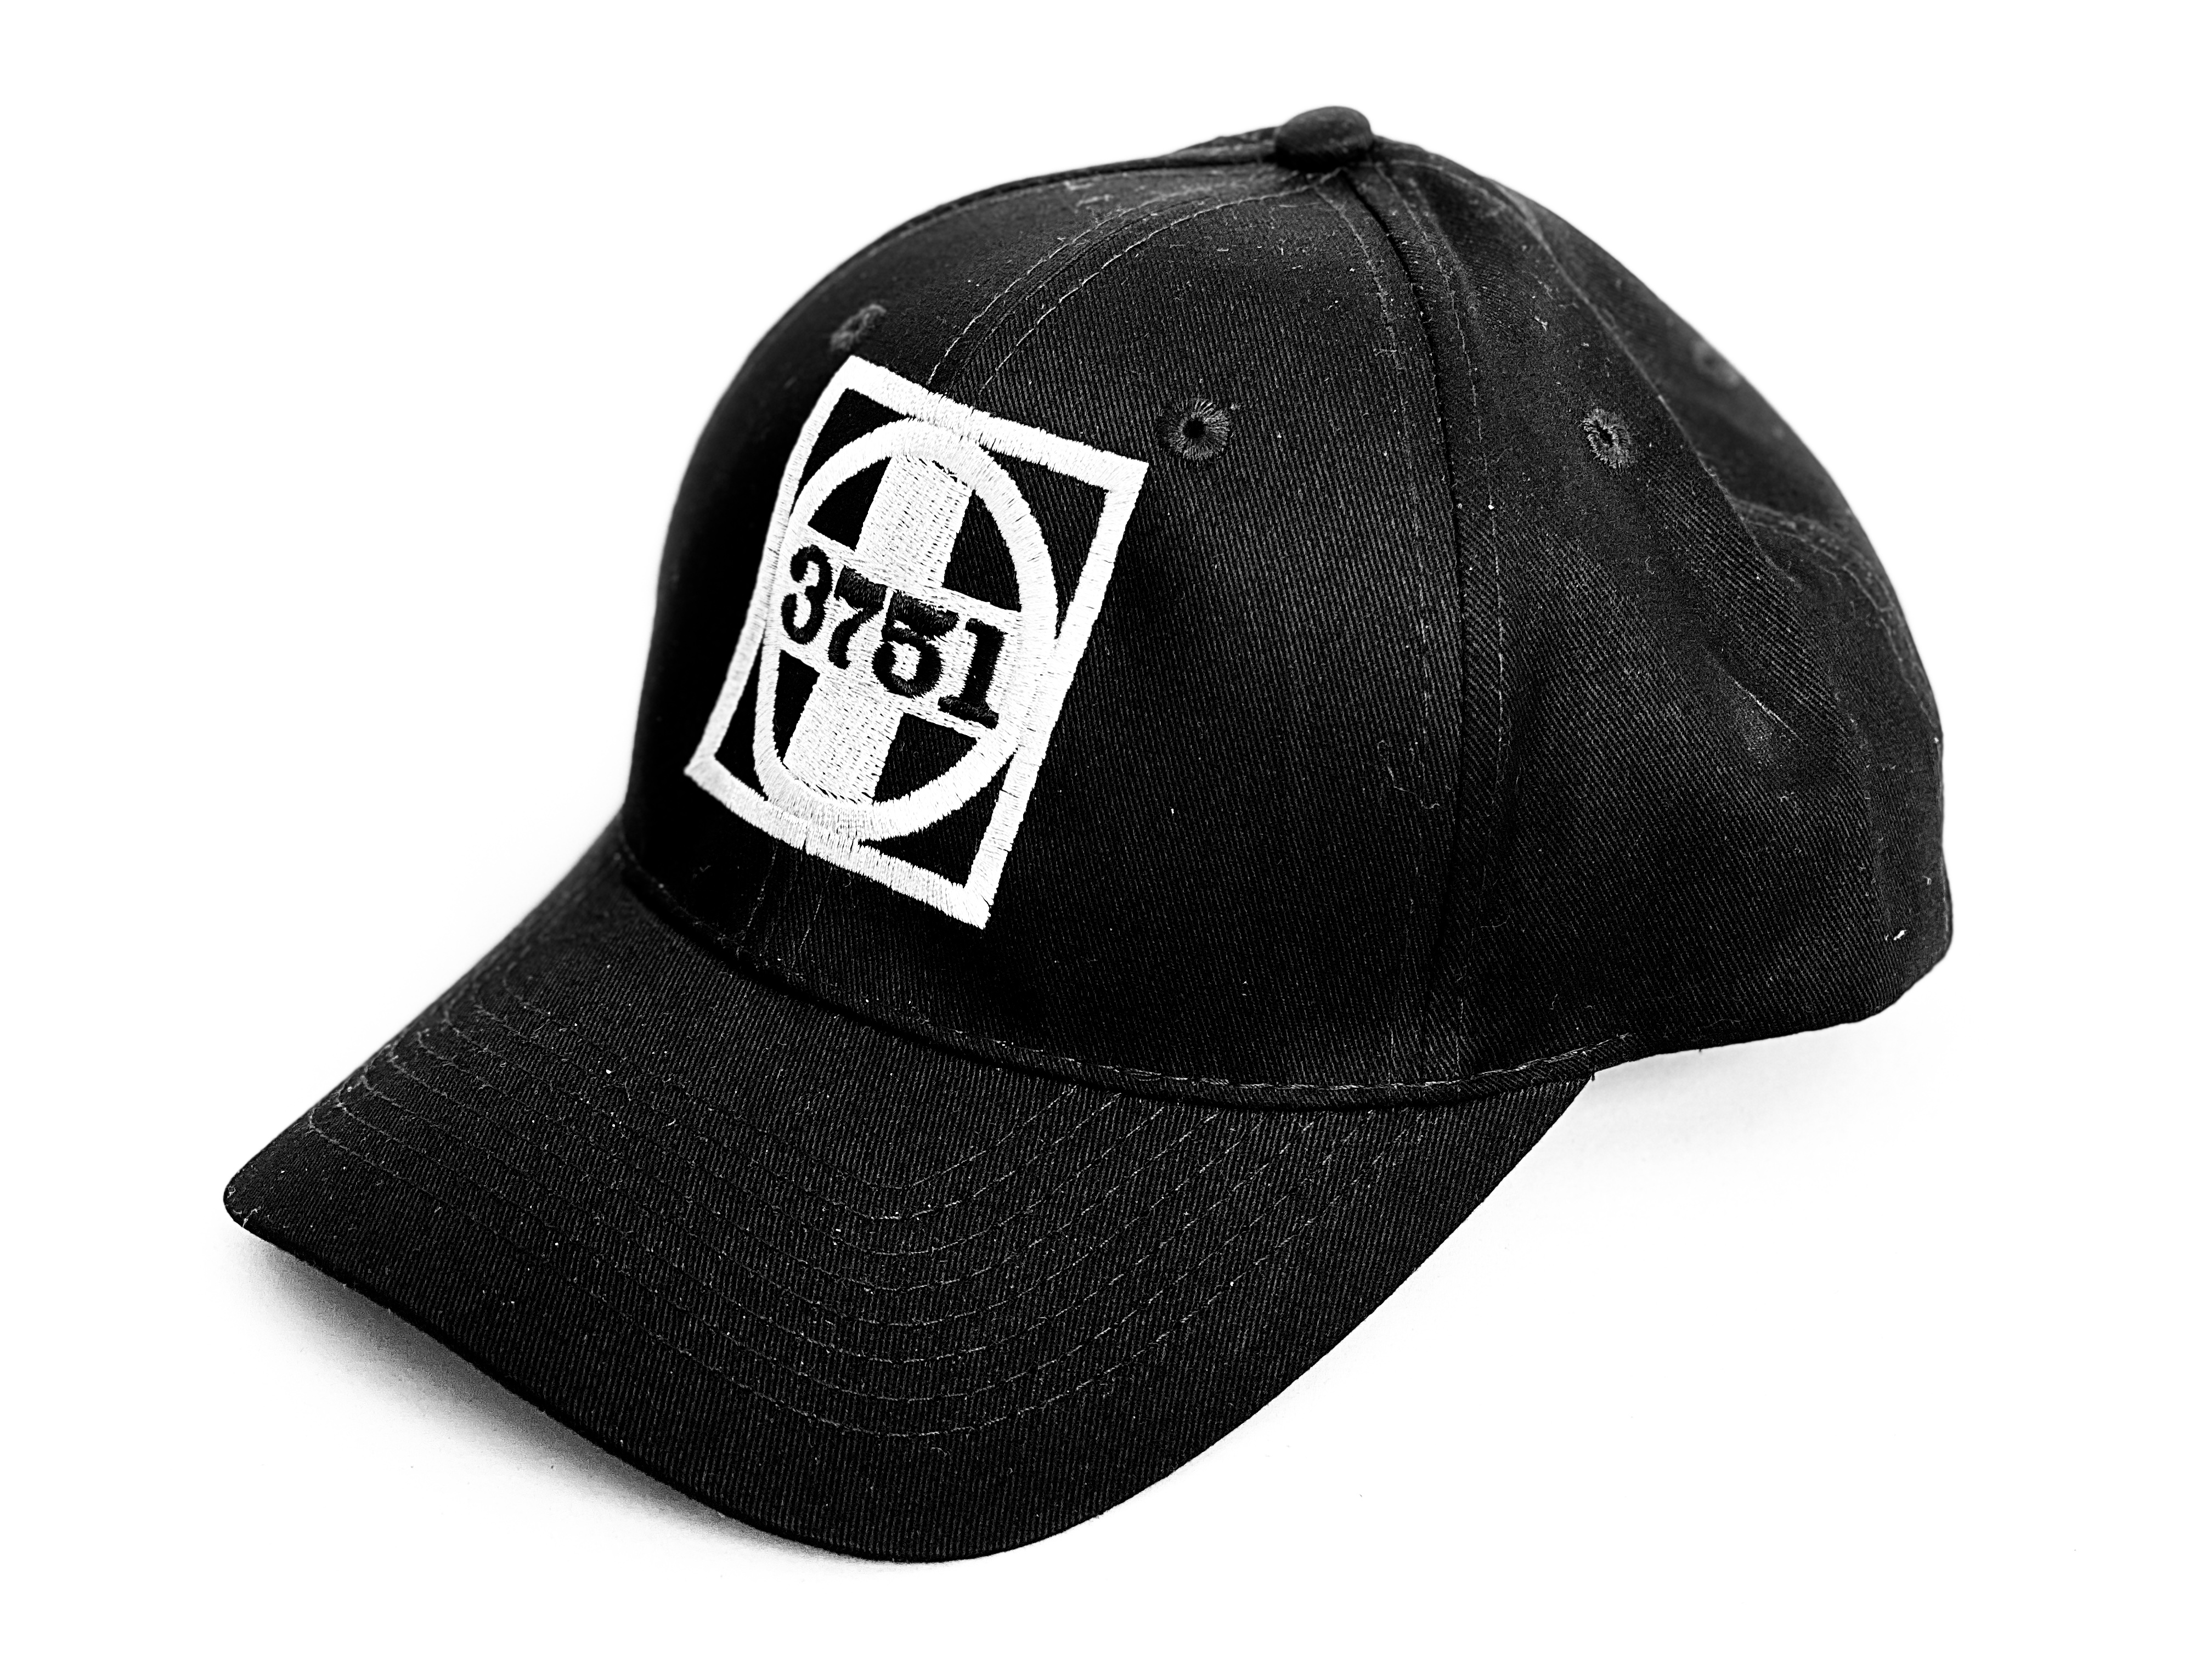 3751 Logo - Grey Herald / Black Hat